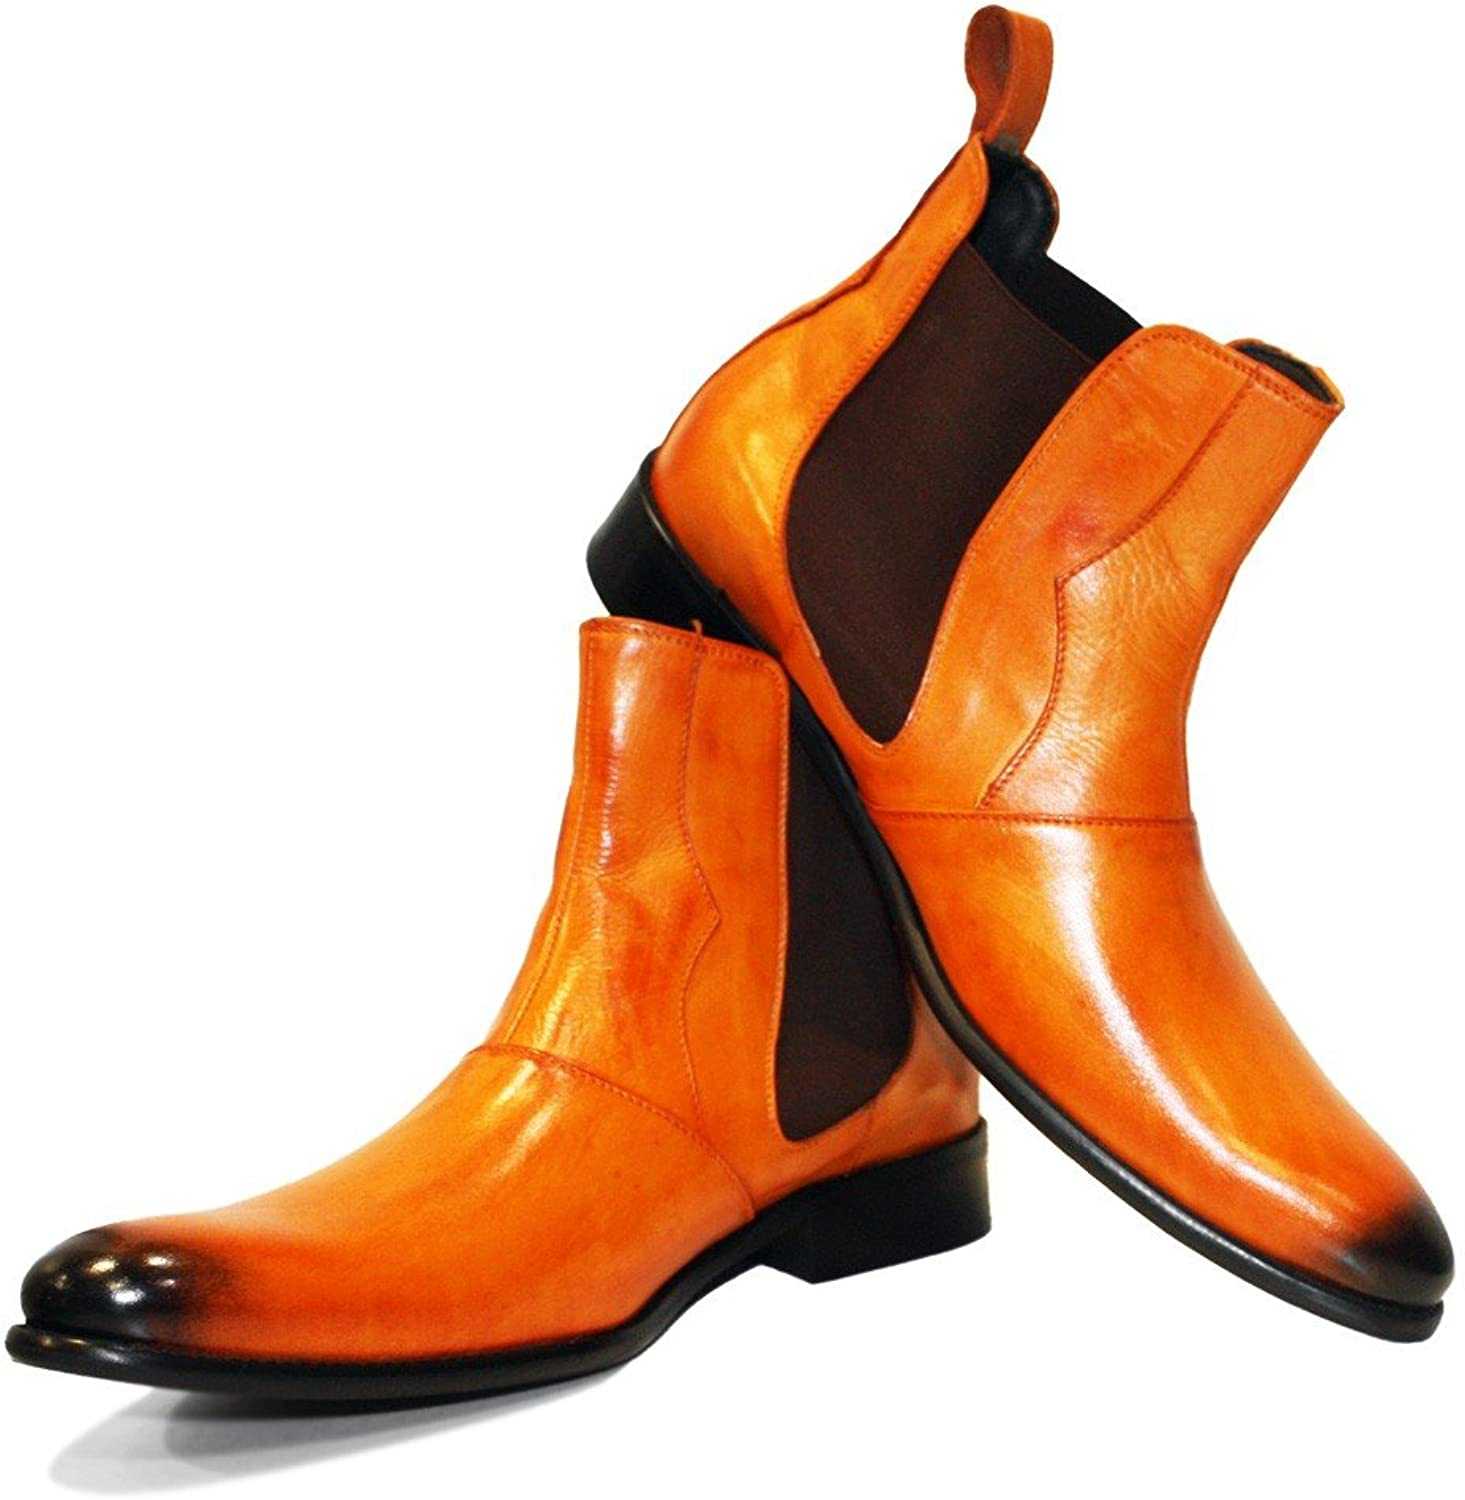 Peppeshoes Modello Chandro - Handmade Italian Leather Mens color orange Ankle Chelsea Boots - Cowhide Hand Painted Leather - Slip-On